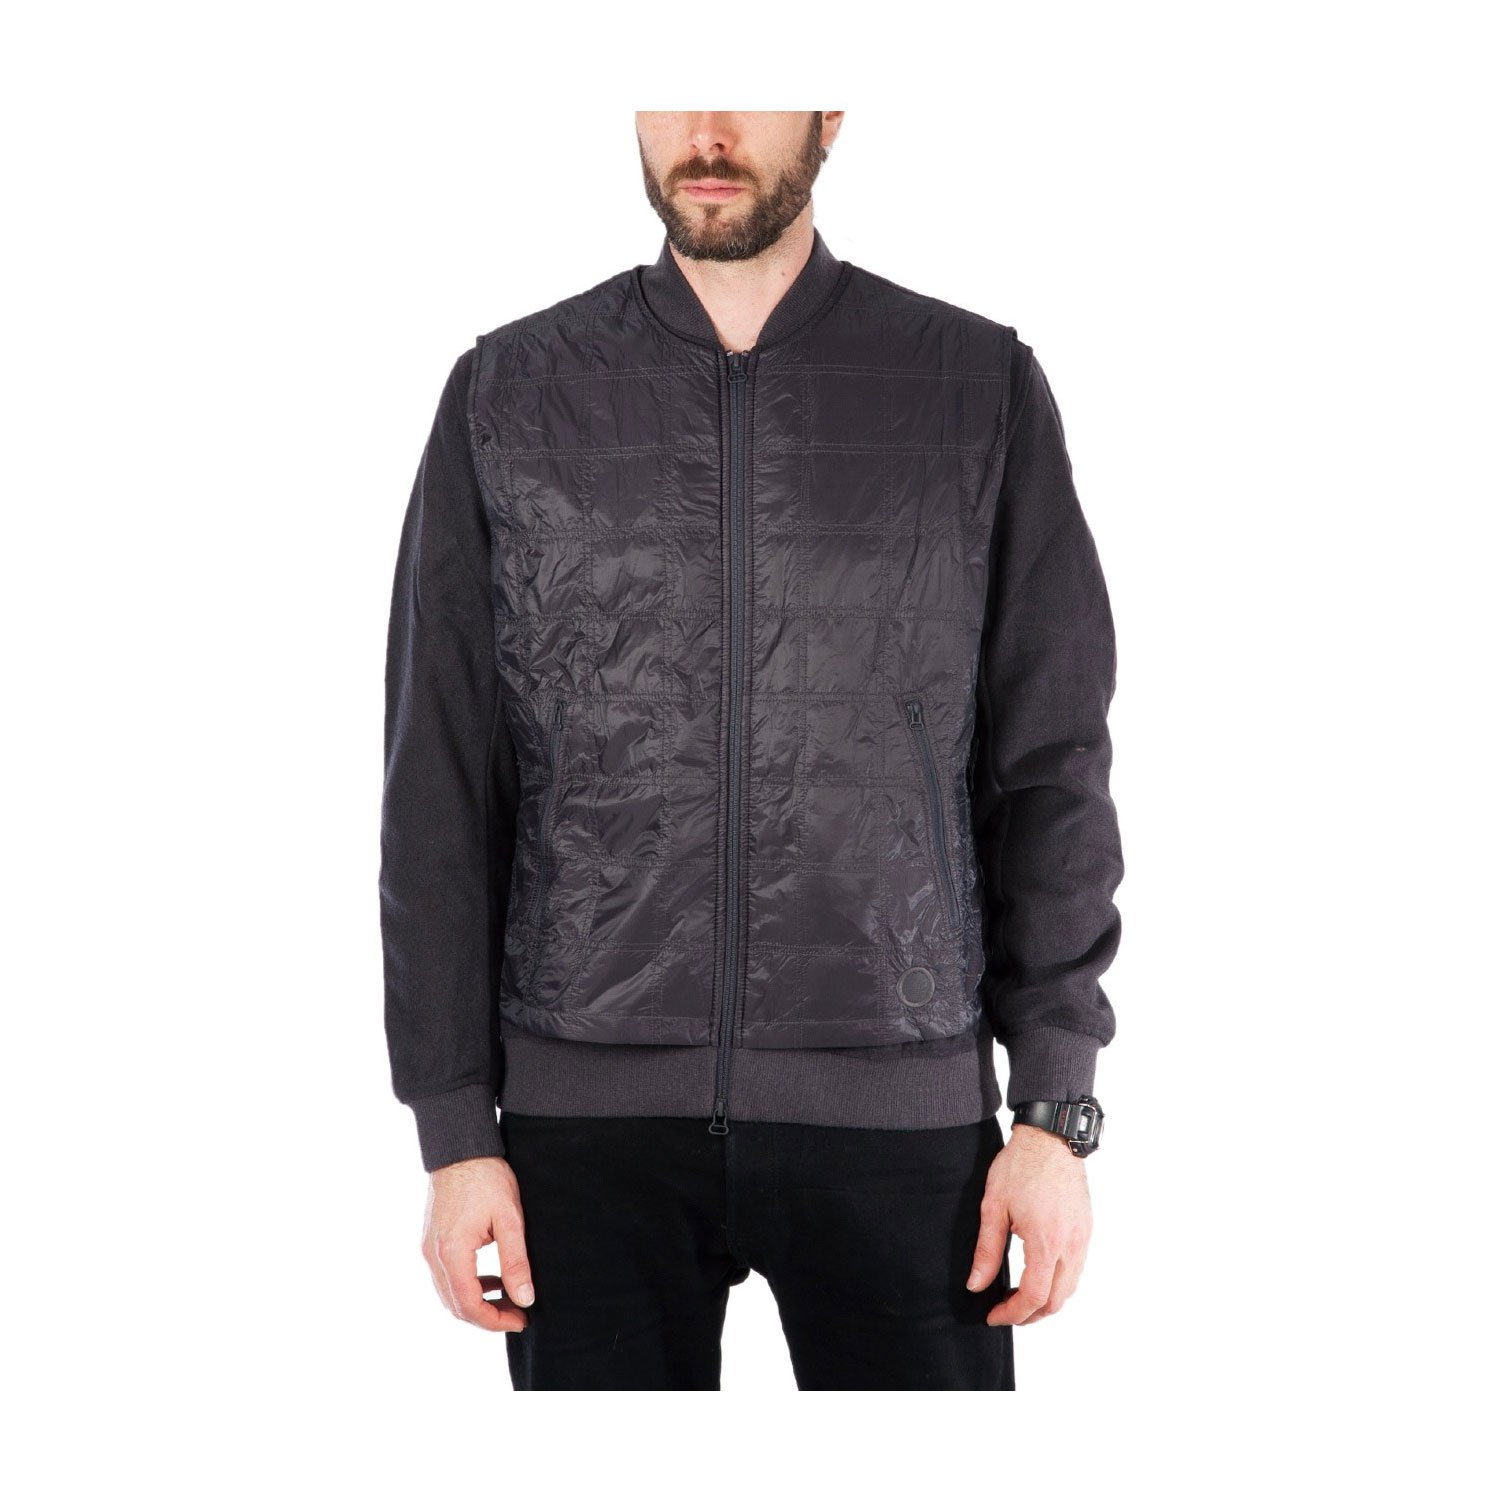 adidas x Wings + Horns Men's Bomber Jacket Black BR0170 (Size: L) by adidas